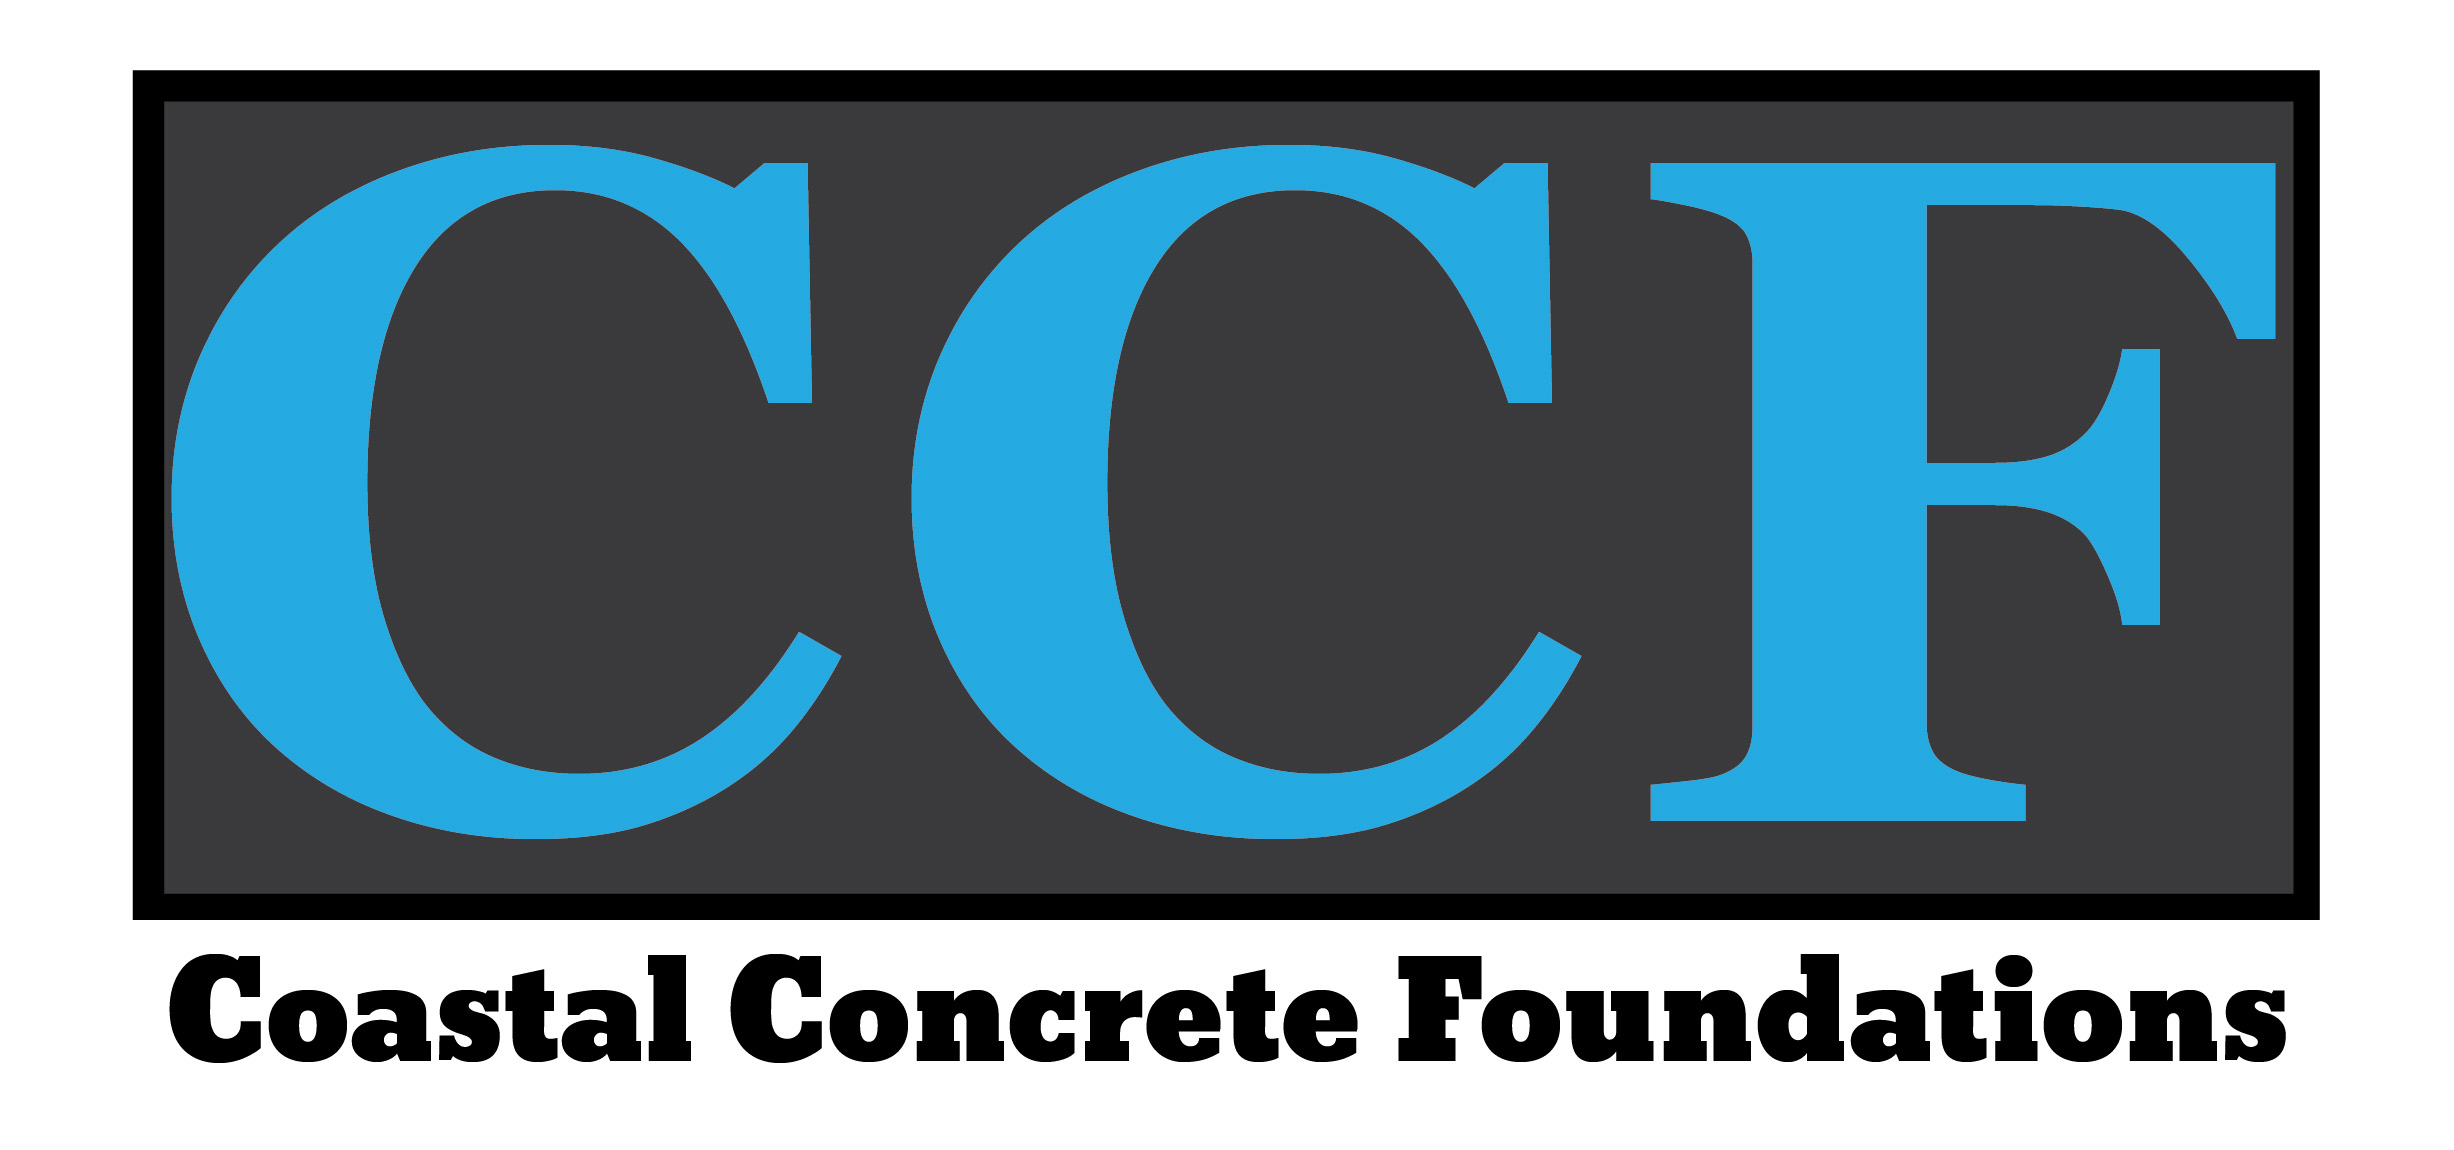 Coastal Concrete Foundations - Concrete Pier Foundations